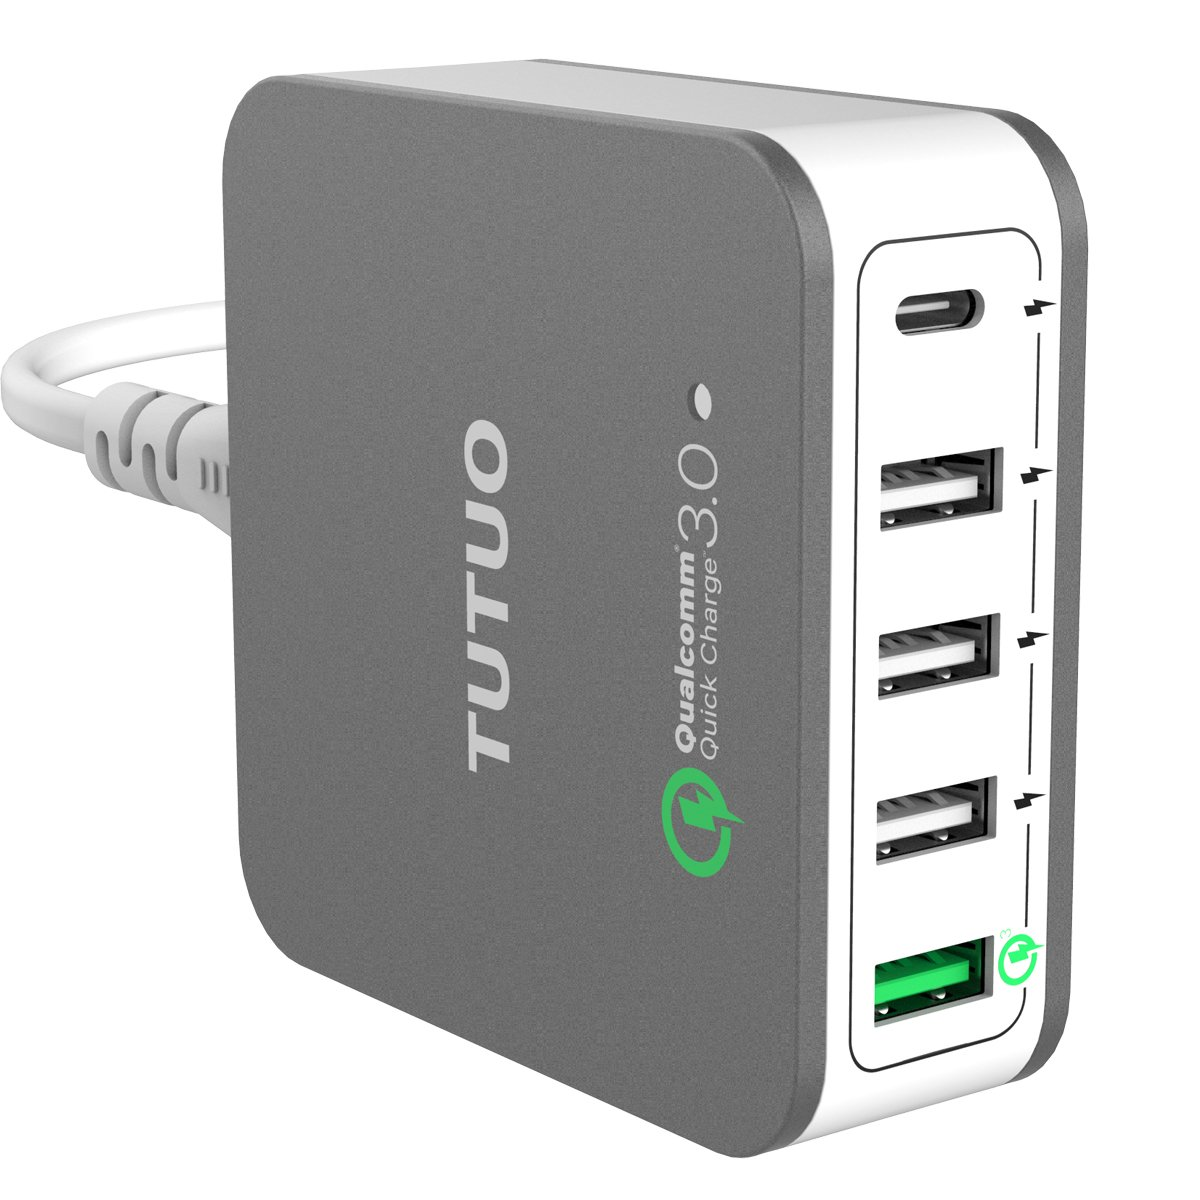 TUTUO USB Charger 40W Type C + Quick Charge 3.0 Desktop Travel Wall 5 Ports Power Adapter Fast Charging Station for Galaxy S8 S7, iPhone X 8 Plus, iPad Pro 10.5, Huawei Mate10, Oneplus 5 (White)